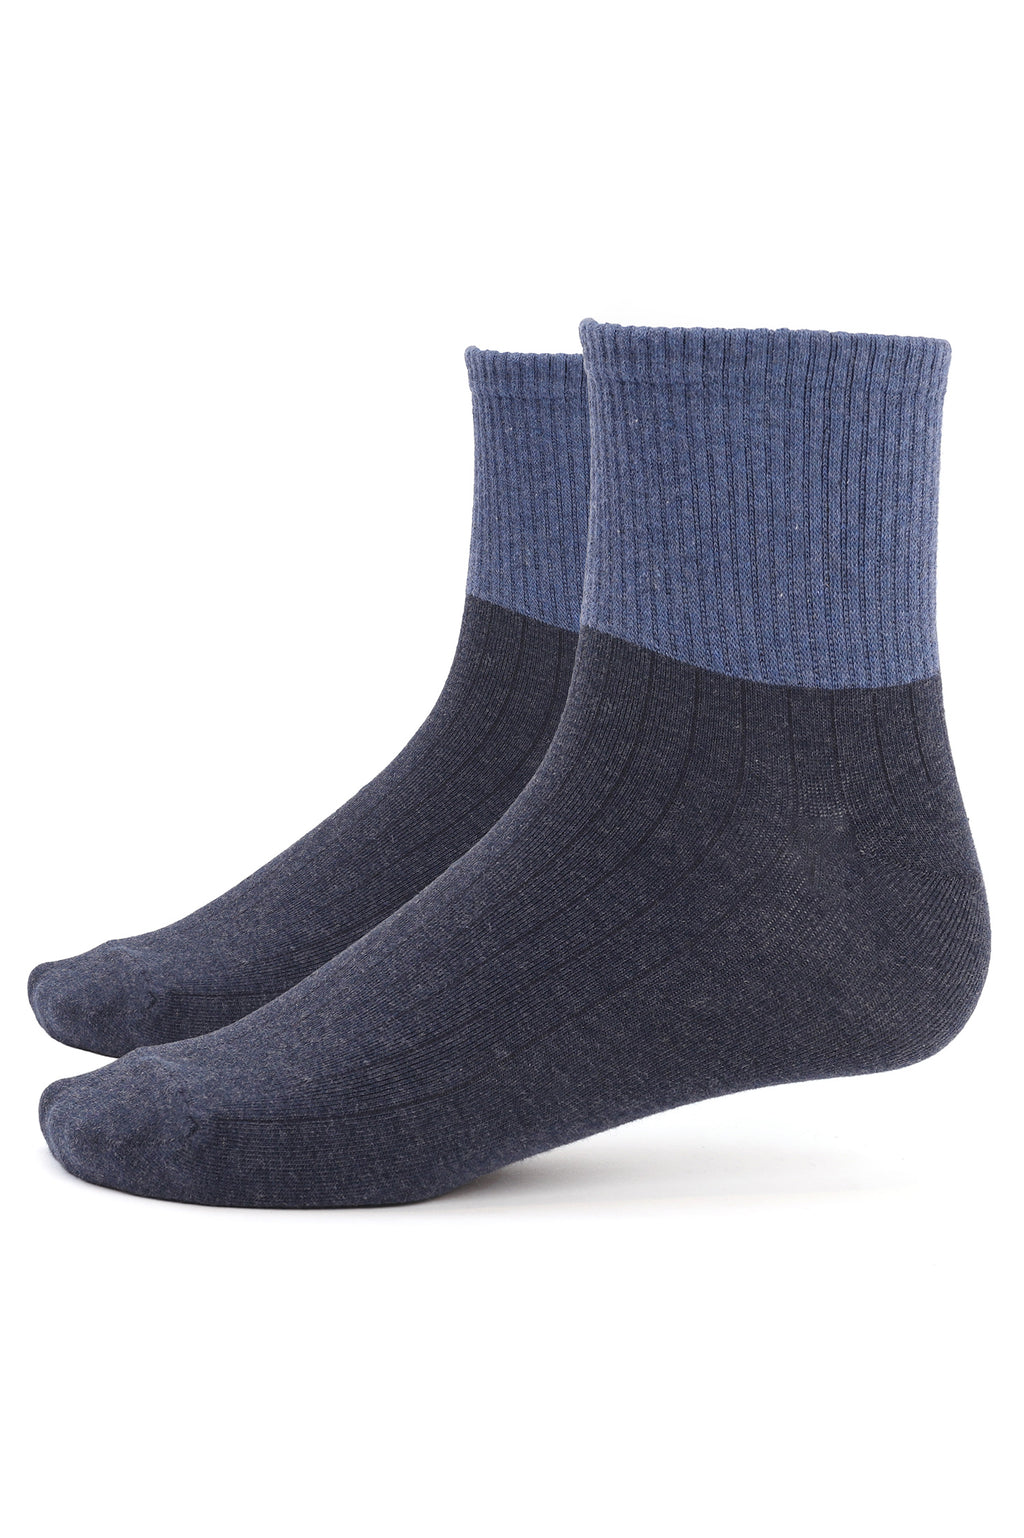 RIBBED SOCKS -NAVY